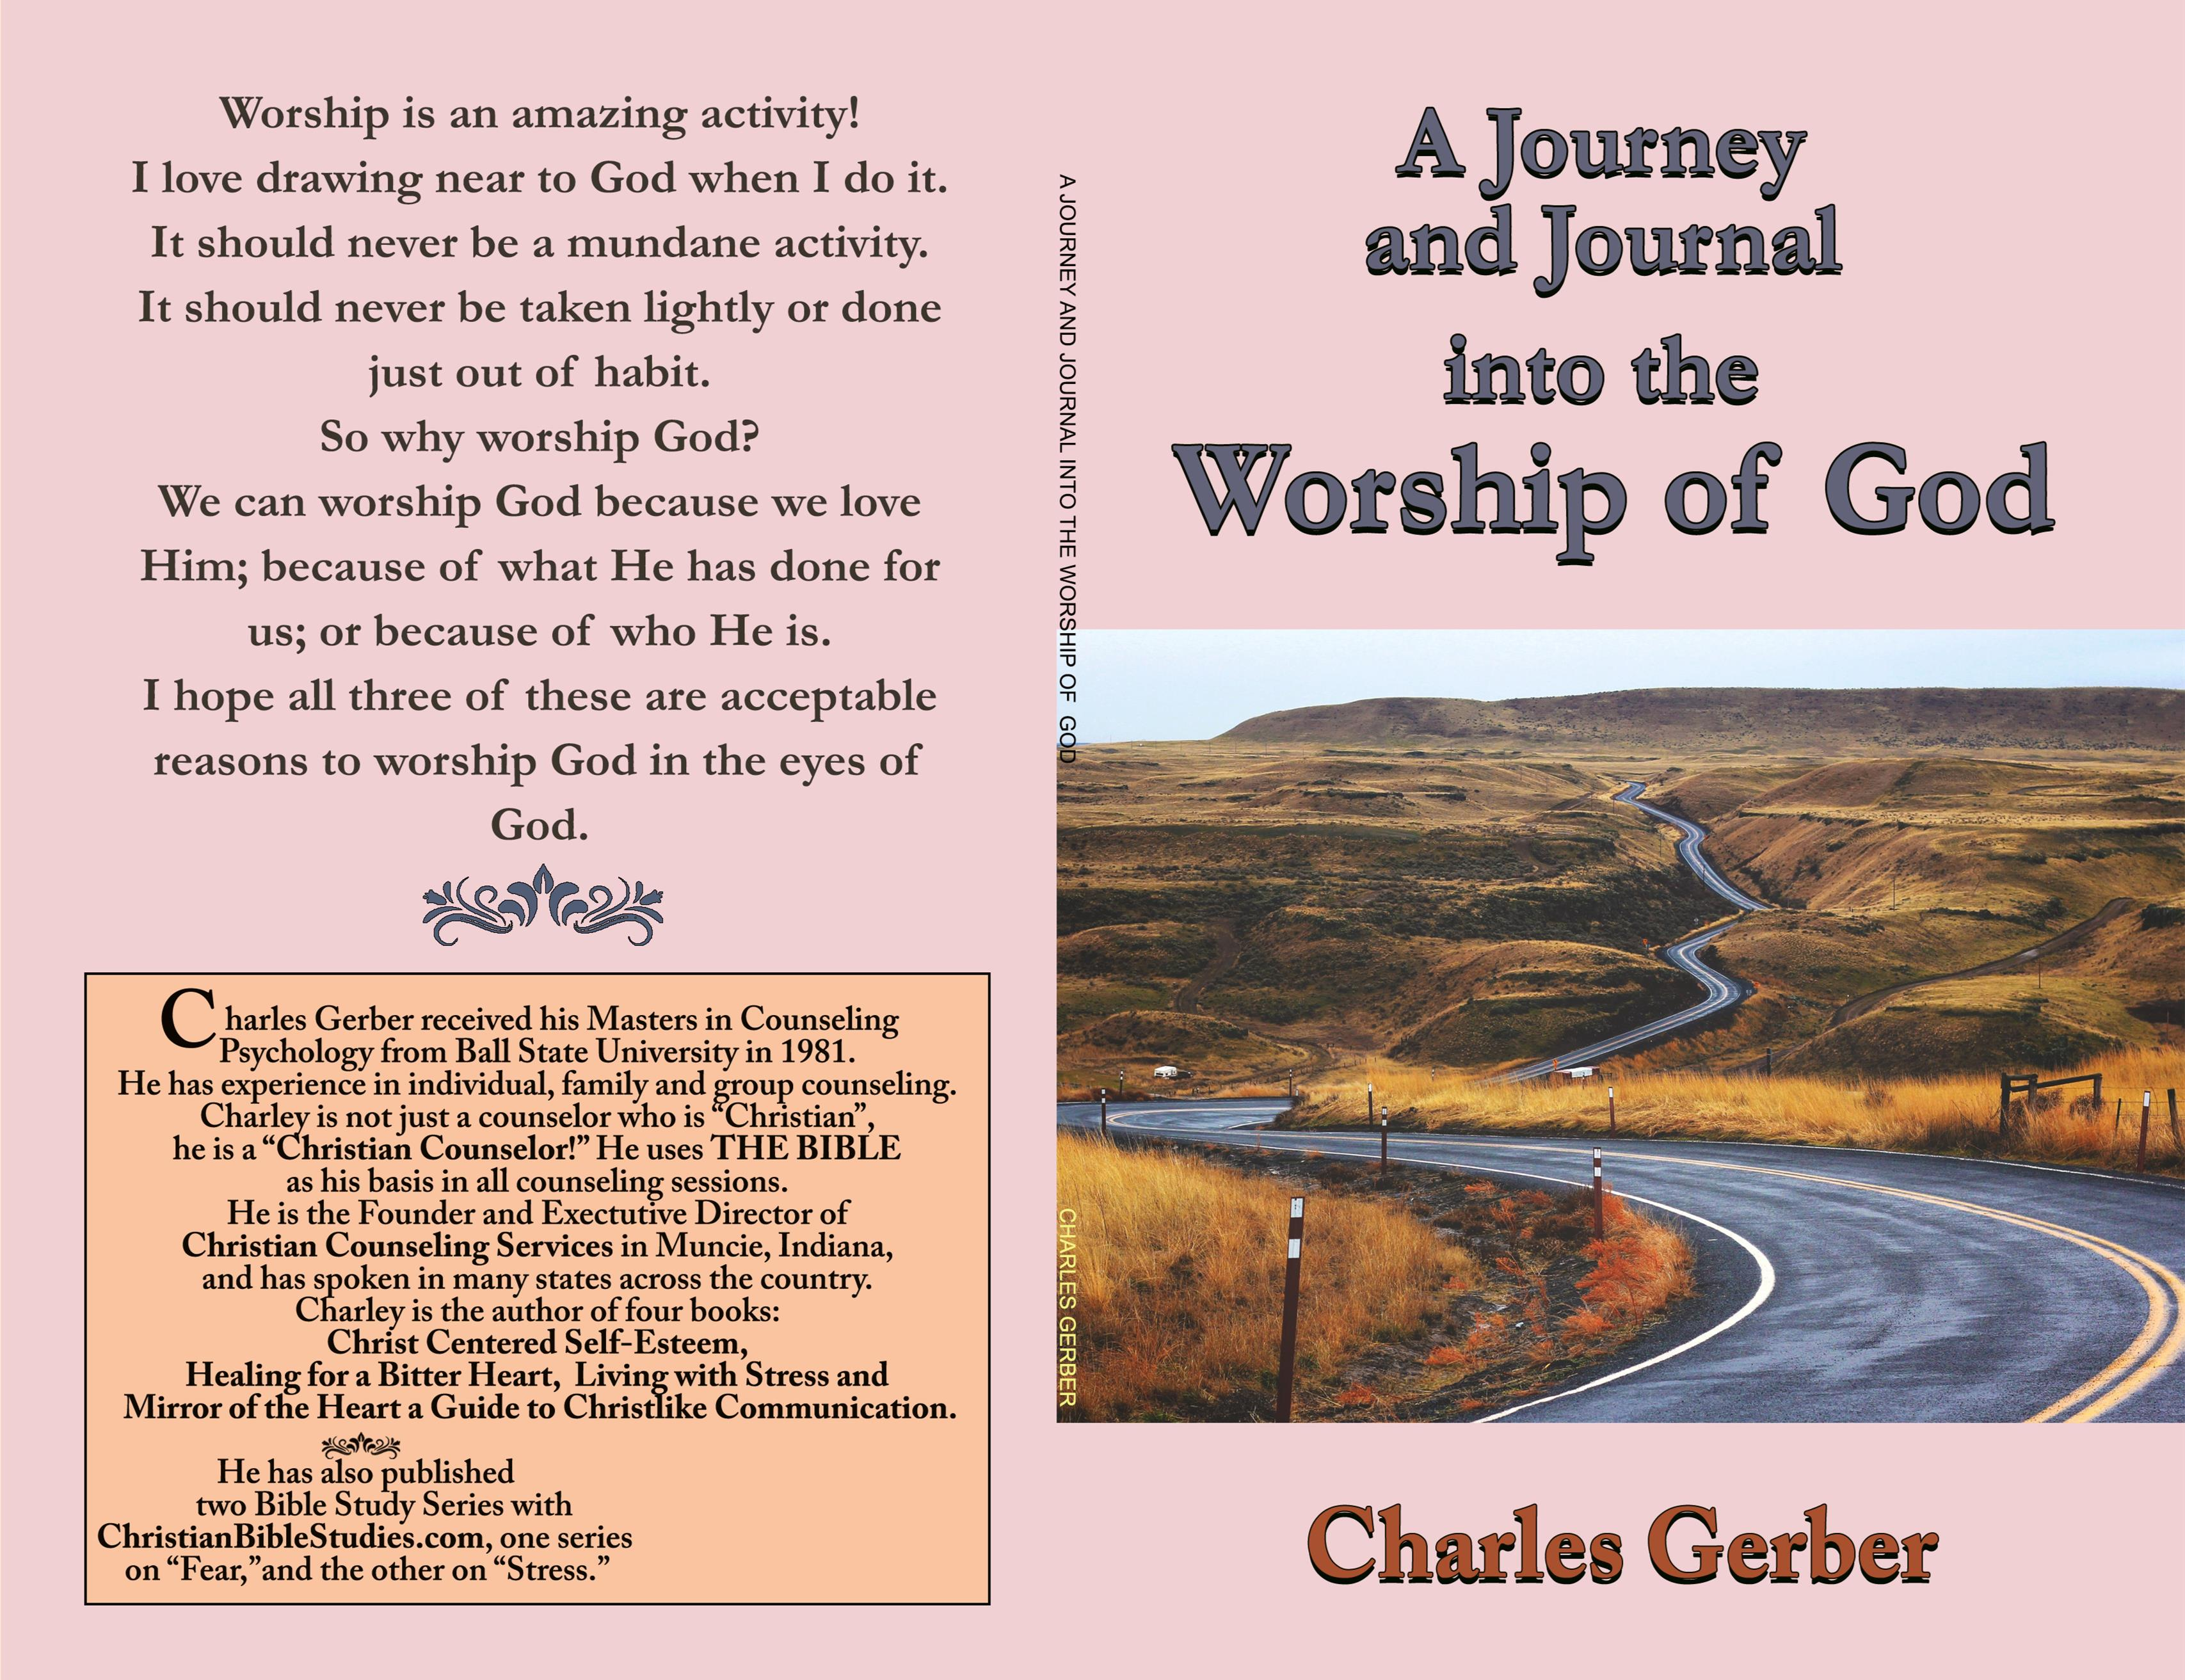 A Journal and Journey into the Worship of God cover image